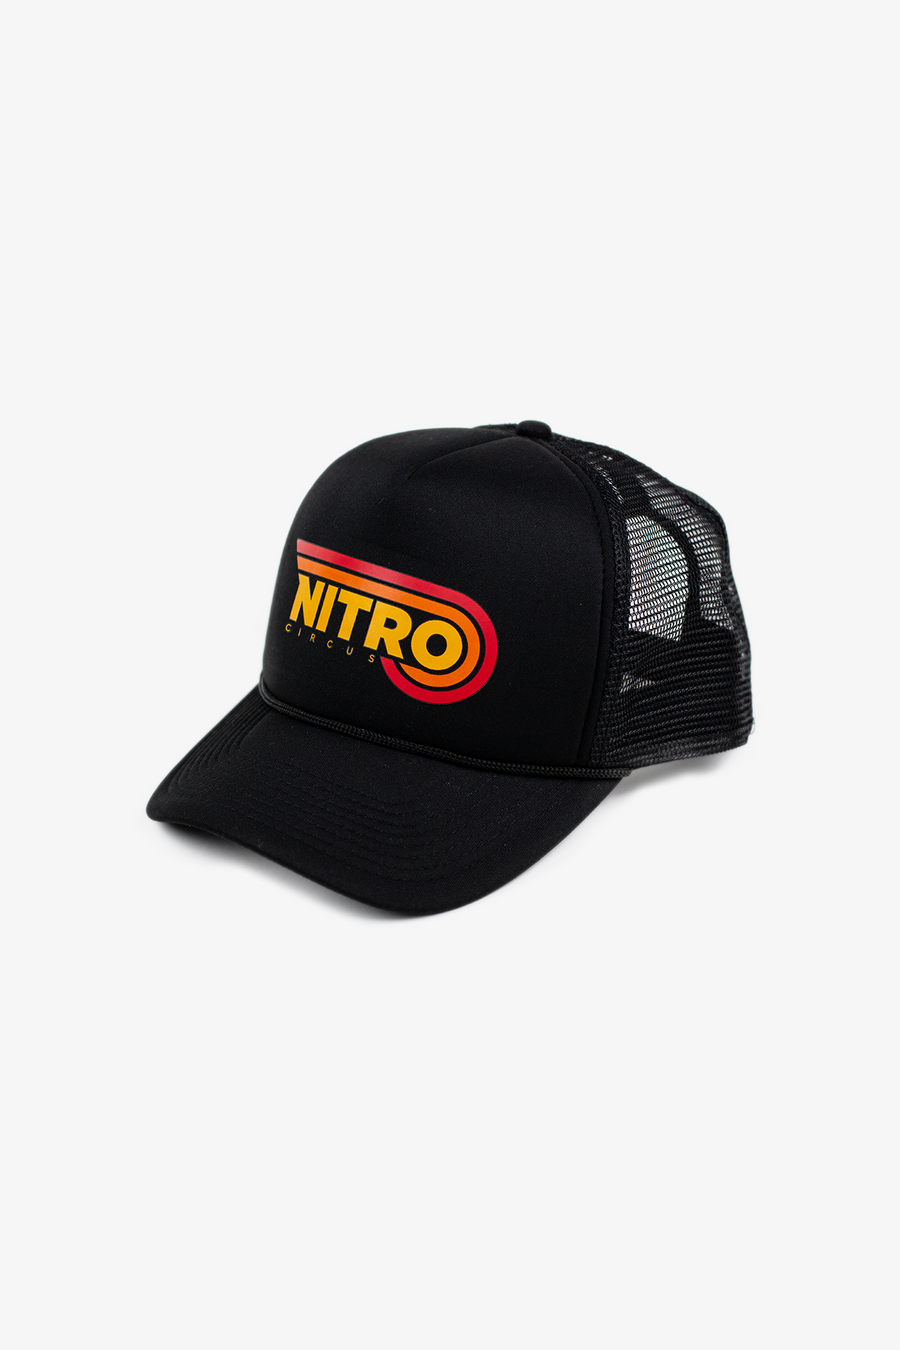 Drive-In Trucker Hat Black